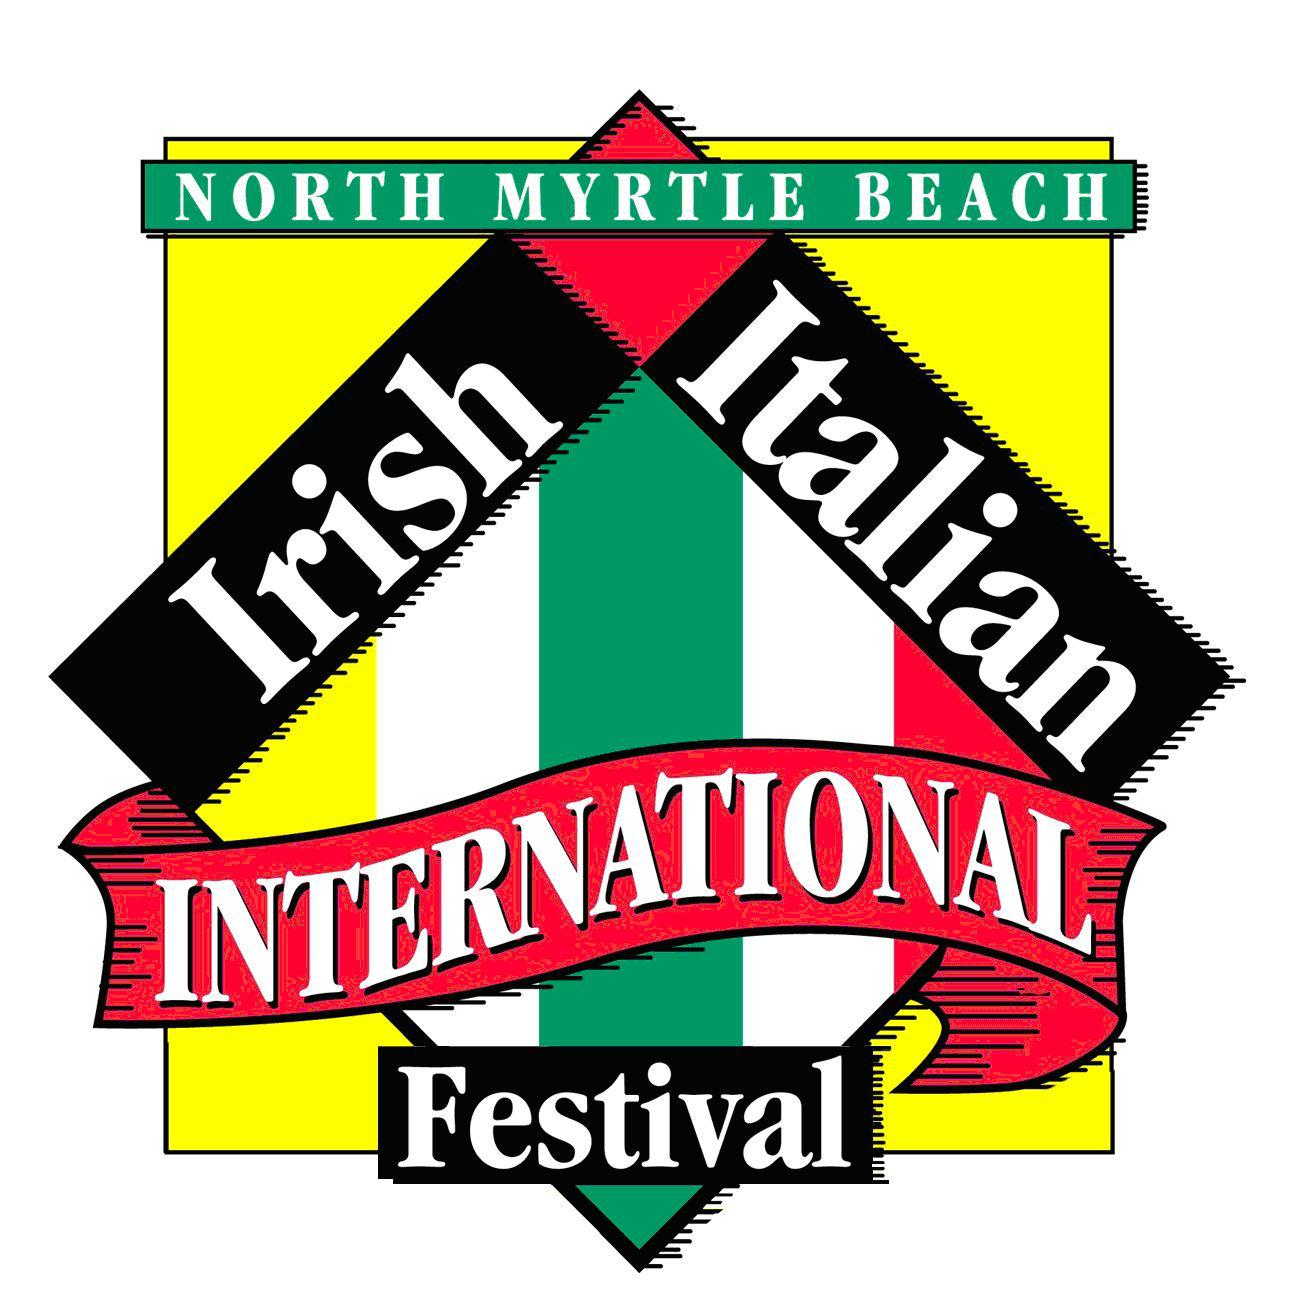 16th Annual Irish Italian International Festival